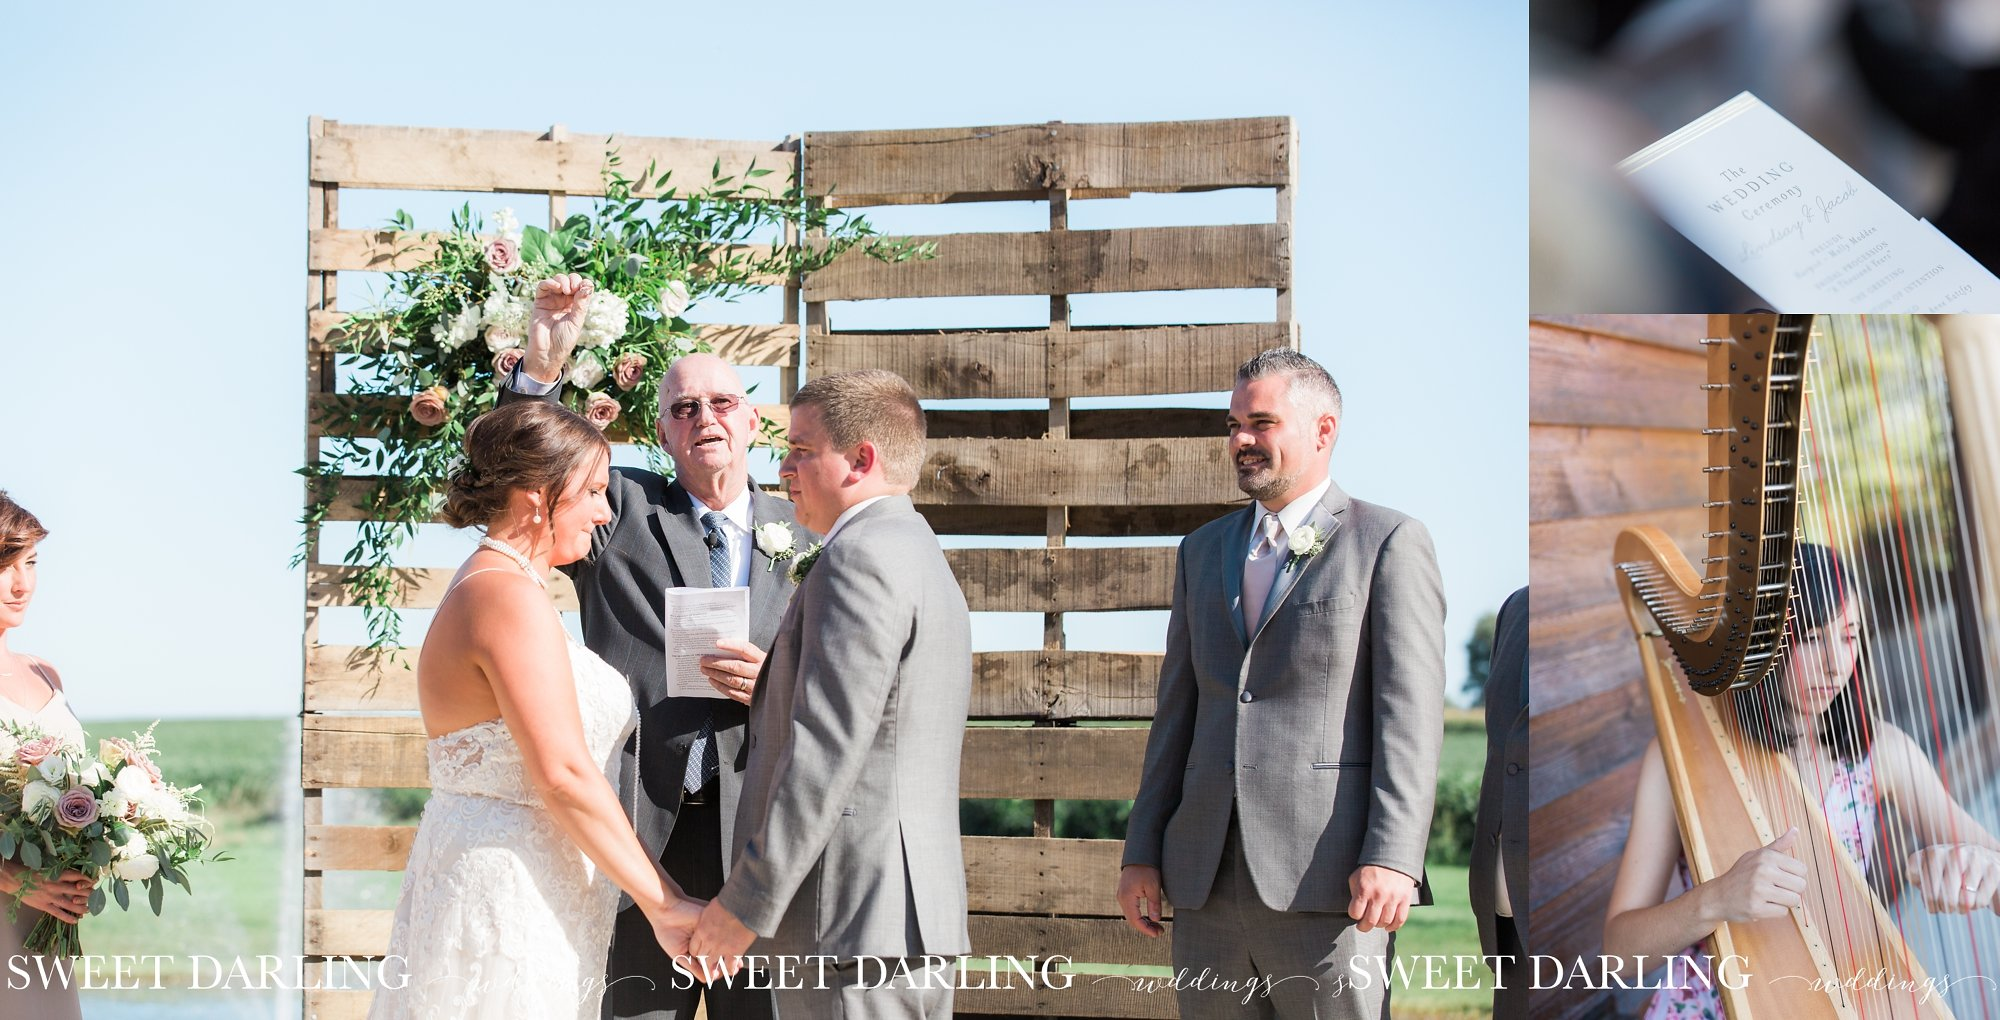 Wedding ceremony on patio at pear tree estate